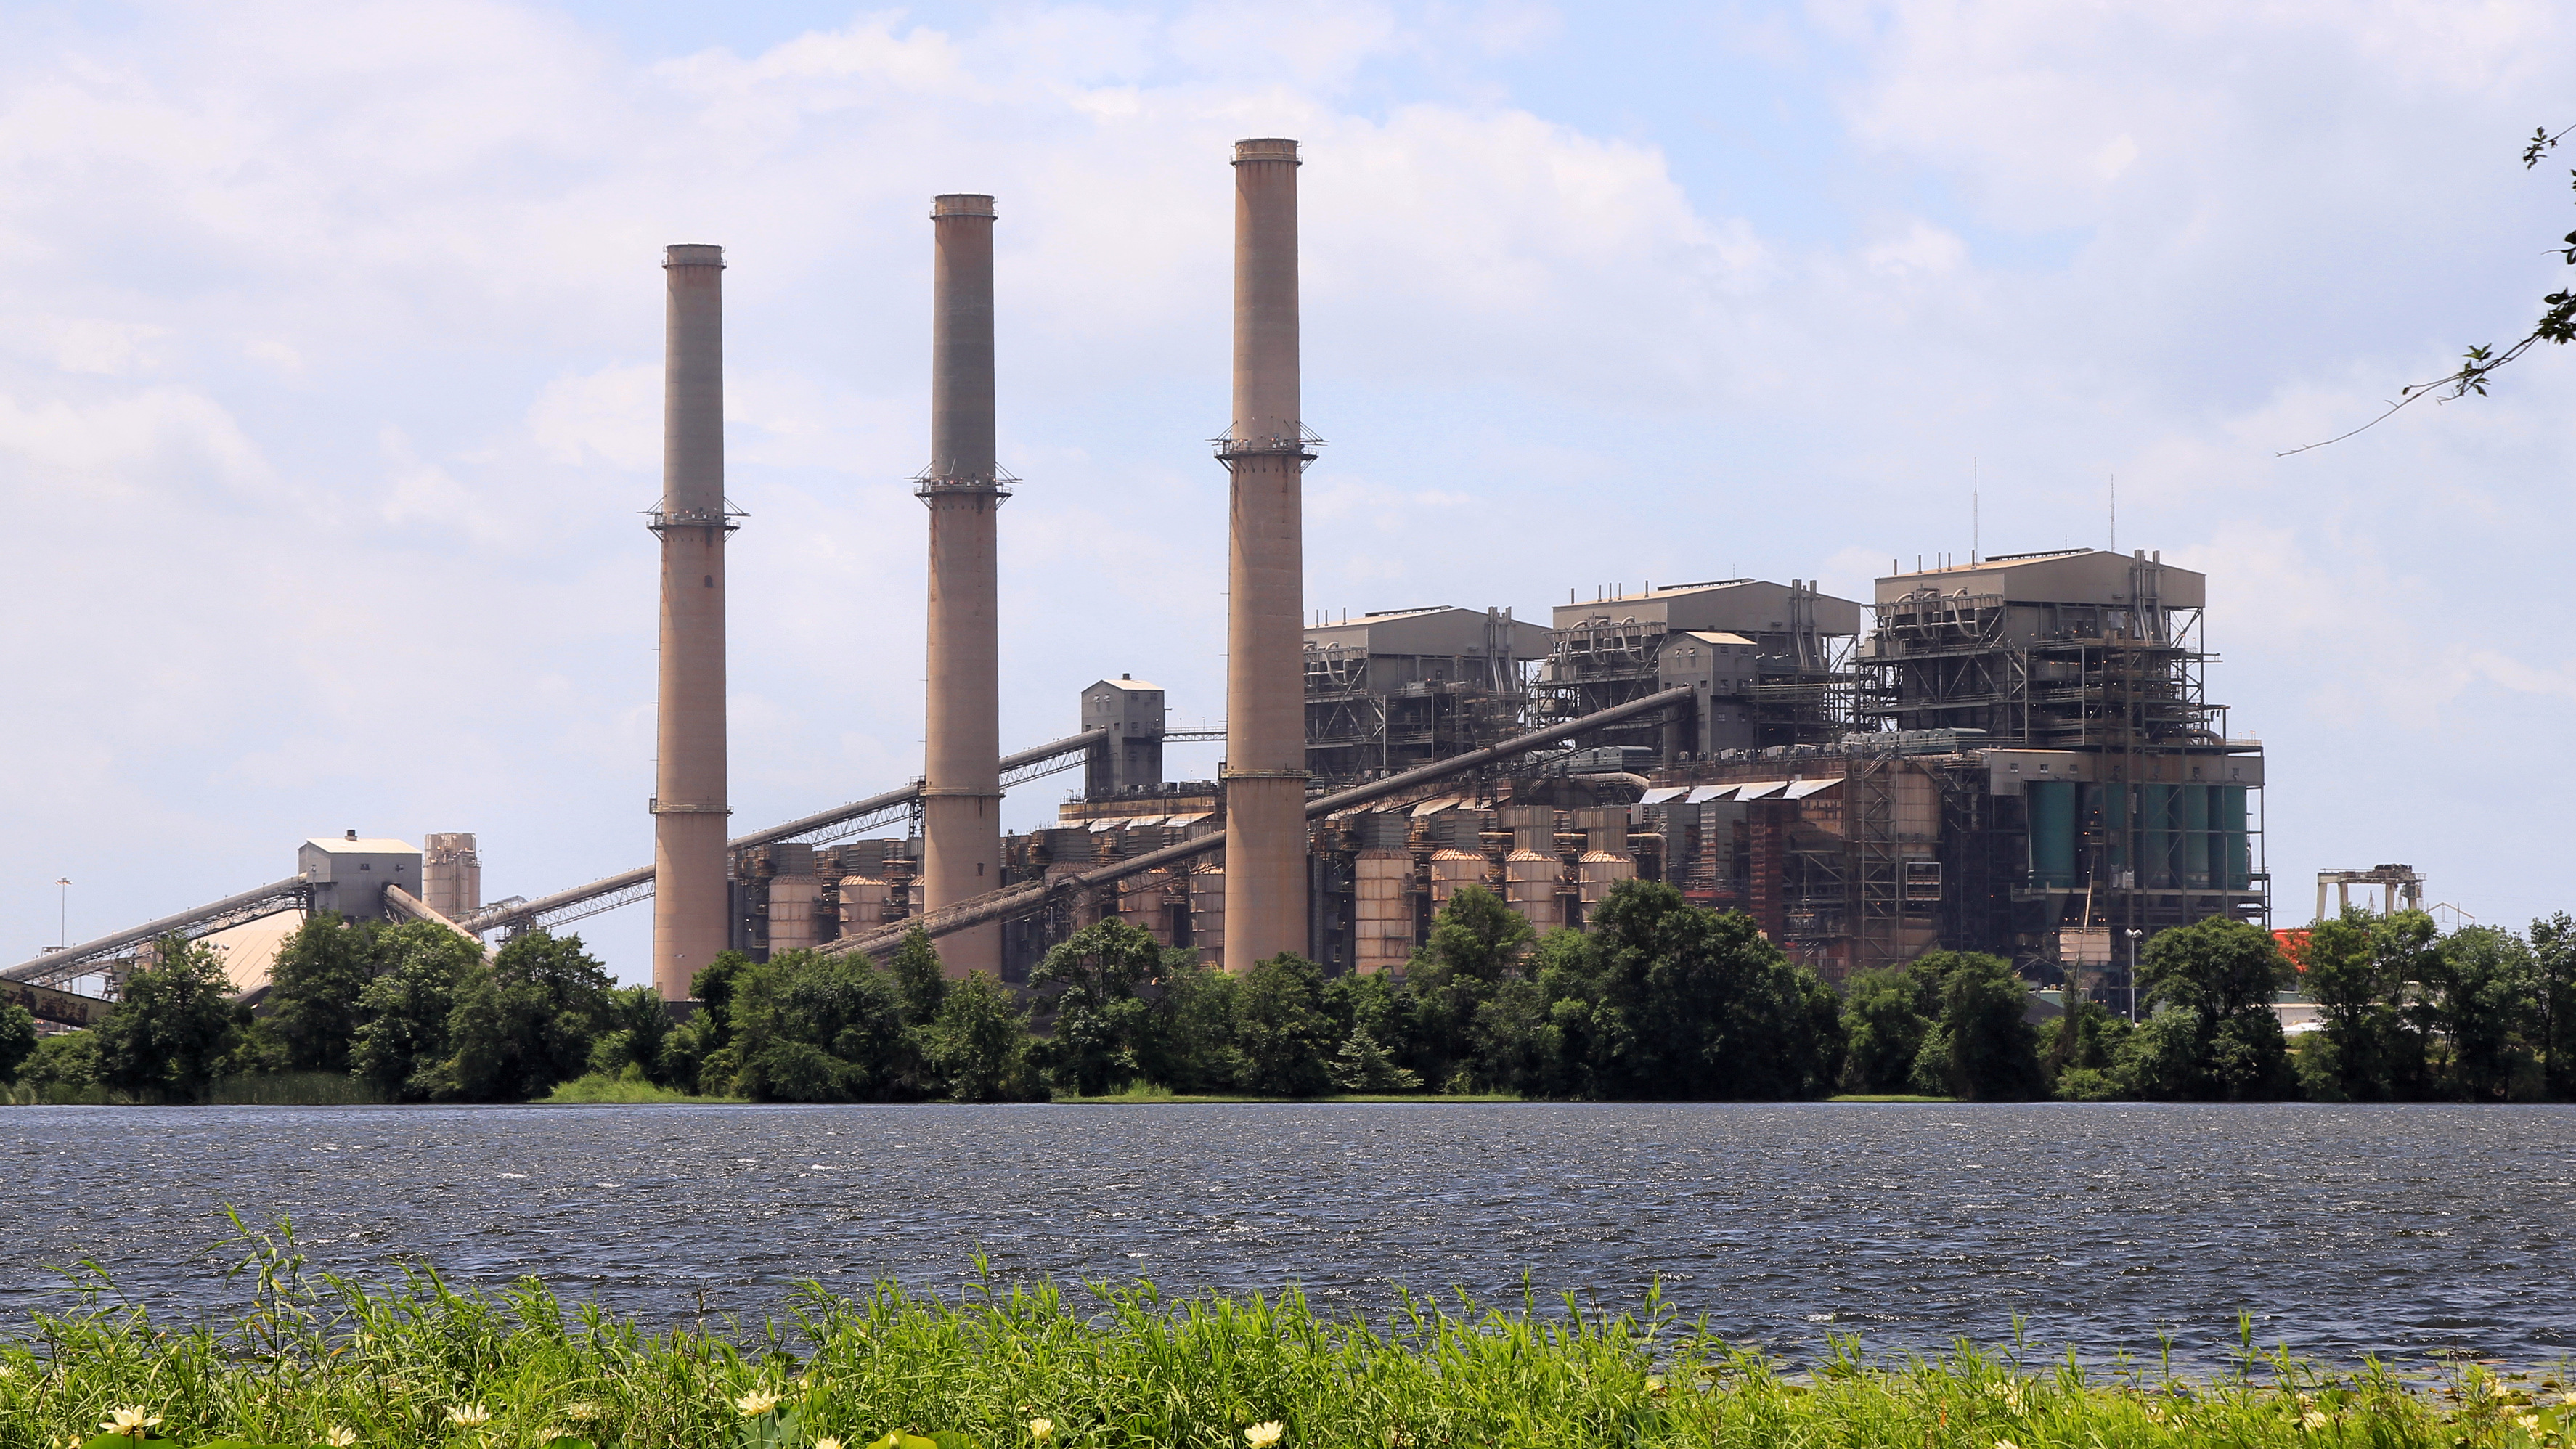 Martin_Lake_Power_Plant_Tatum_Texas_2019